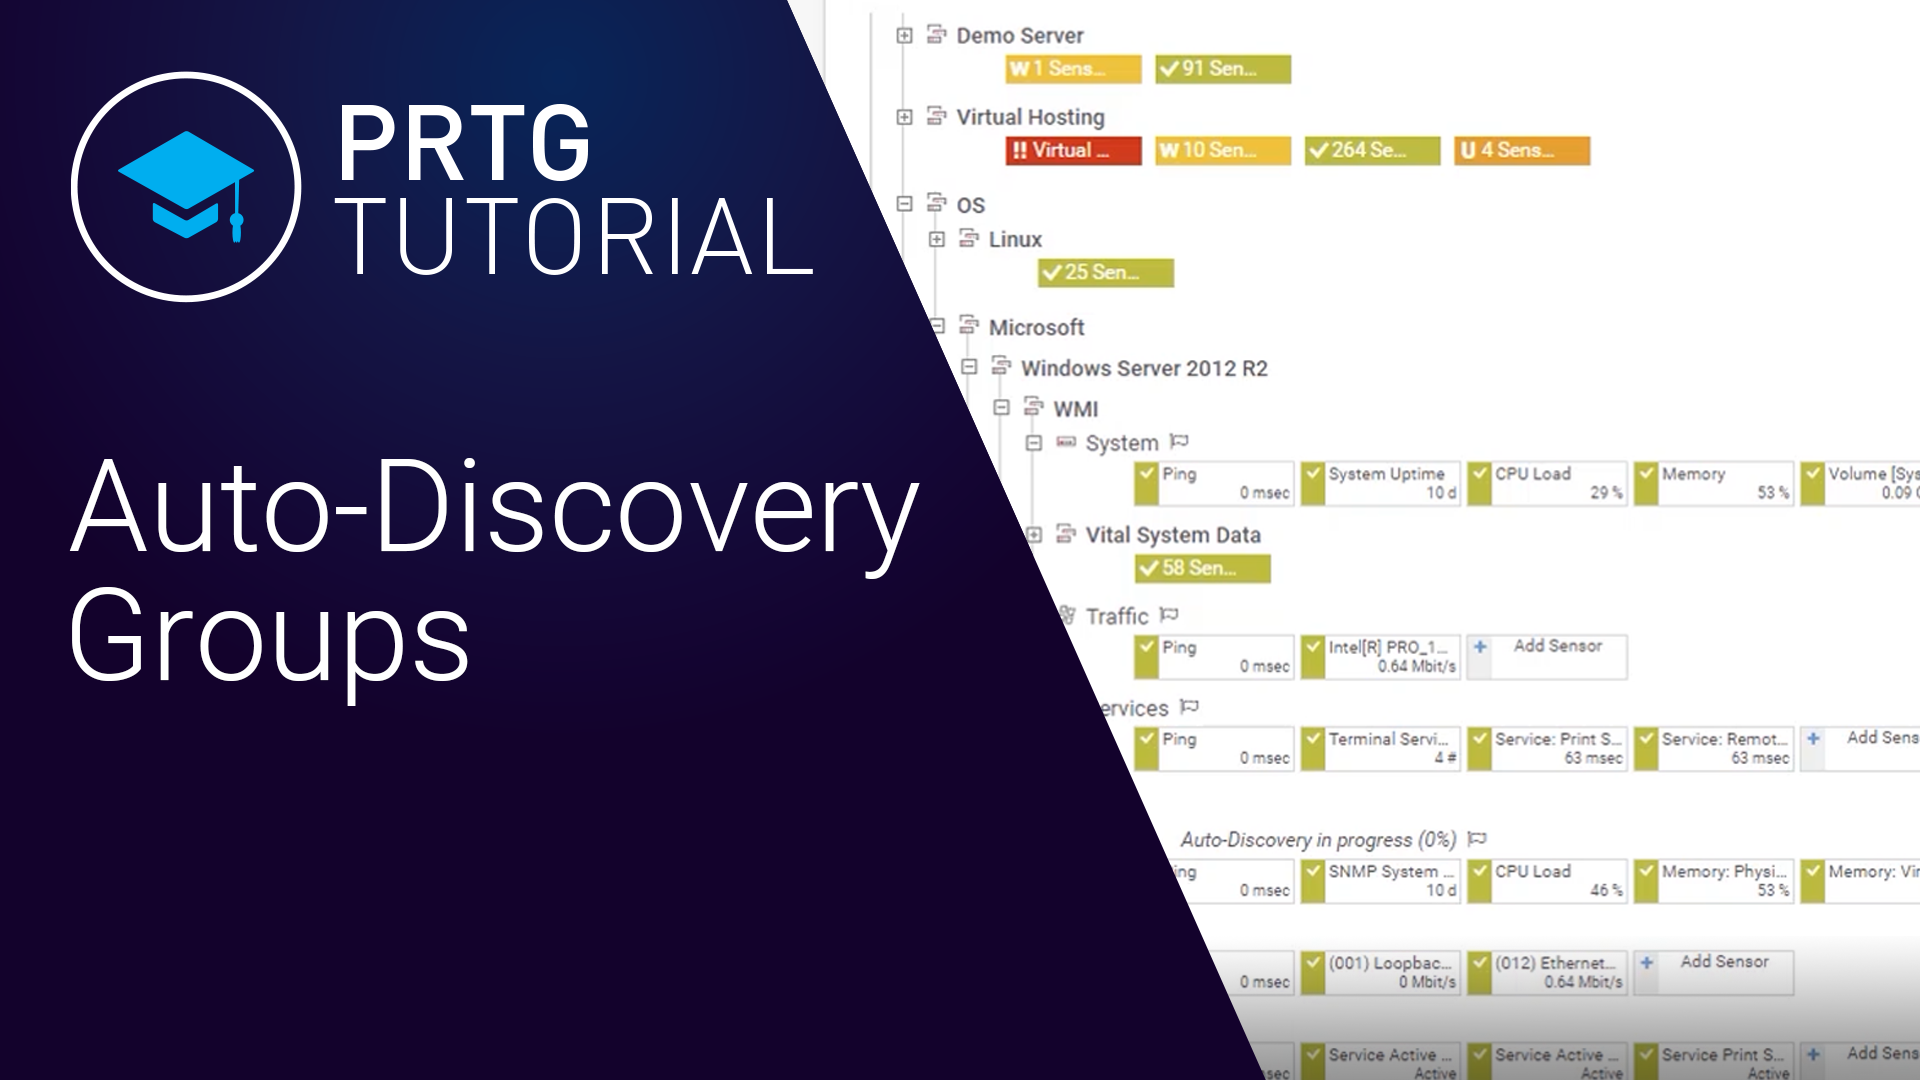 PRTG Auto-Discovery Groups (Videos, Overview)